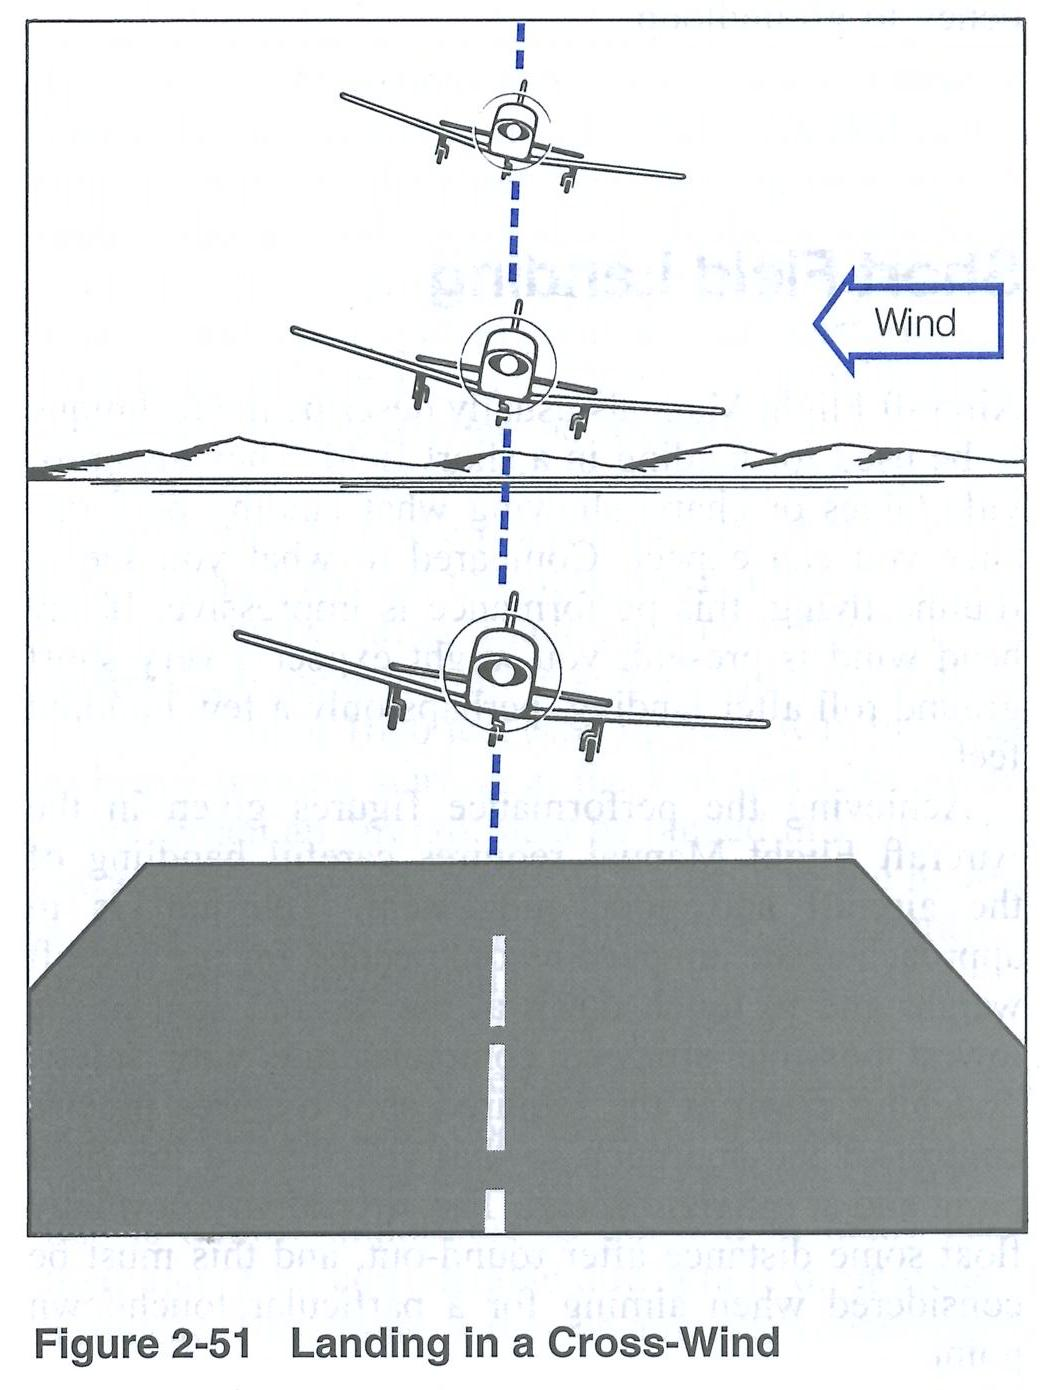 Transport Canada's Flight Training Manual.